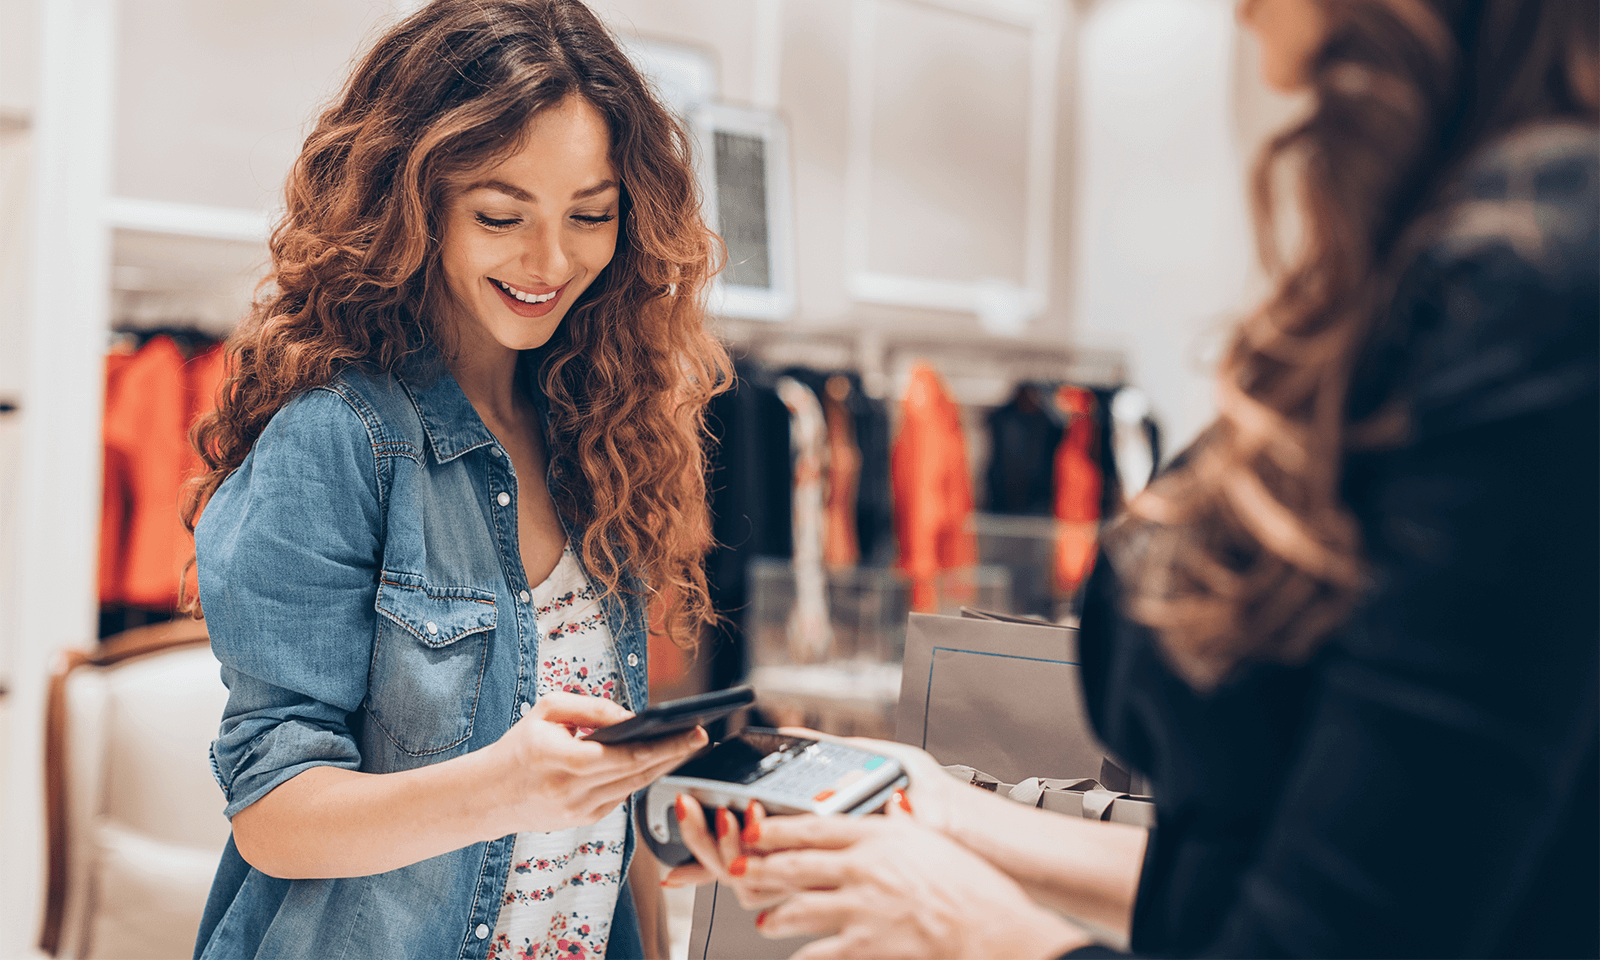 Understanding Your Online Shoppers: 4 Ways to Create a Positive Experience